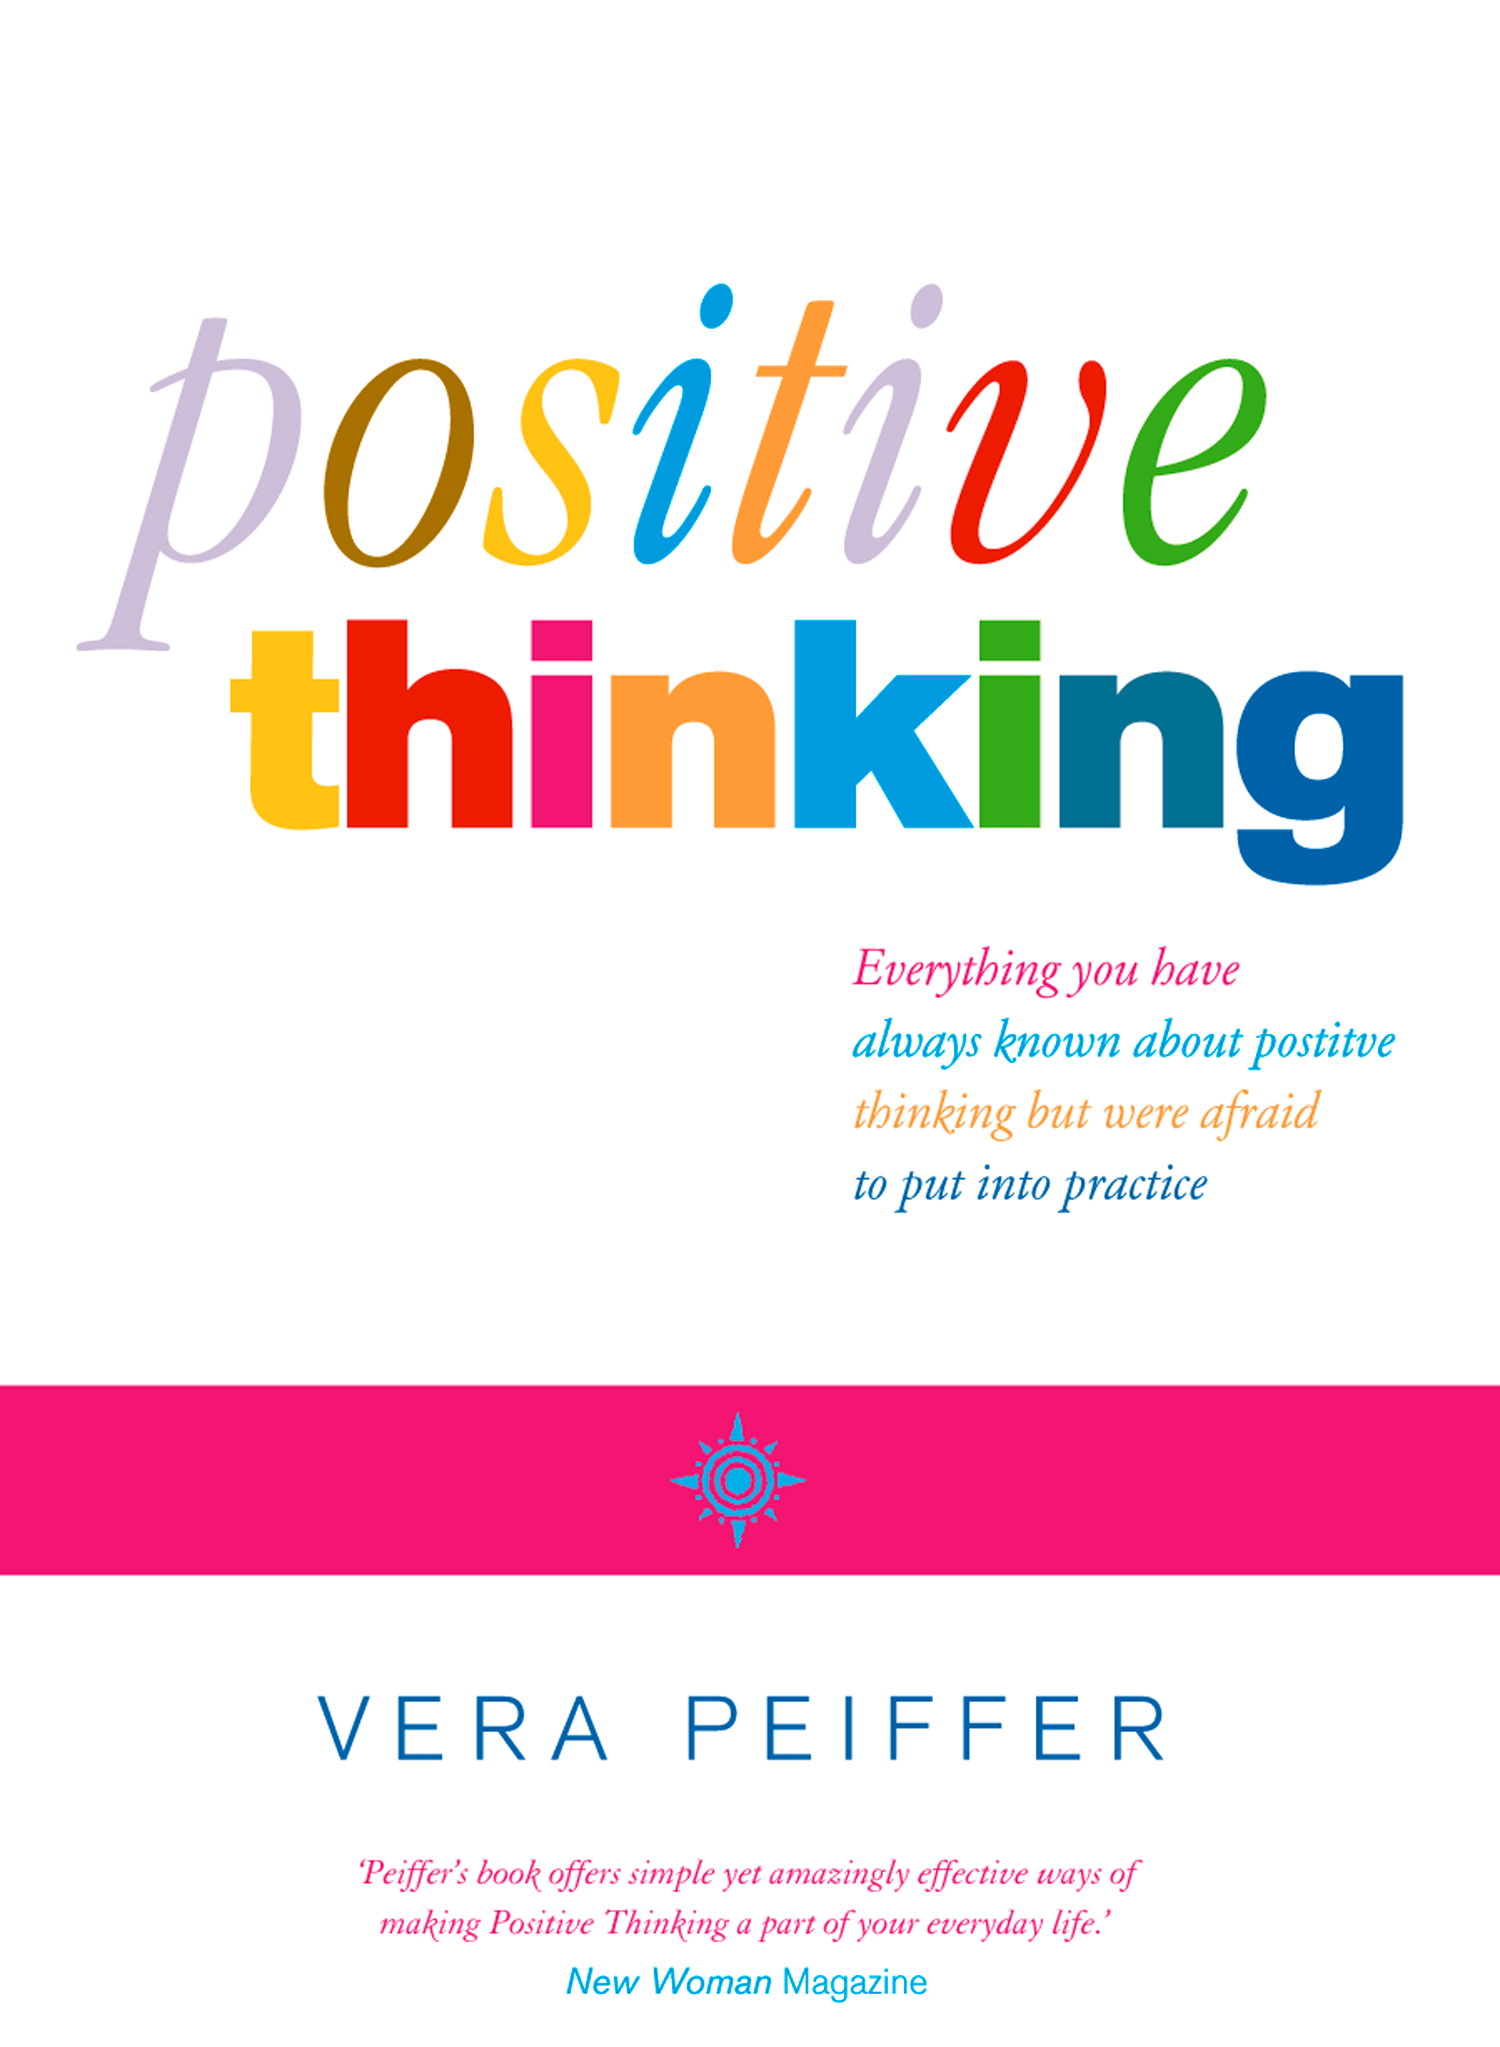 Positive Thinking: Everything you have always known about positive thinking but were afraid to put into practice